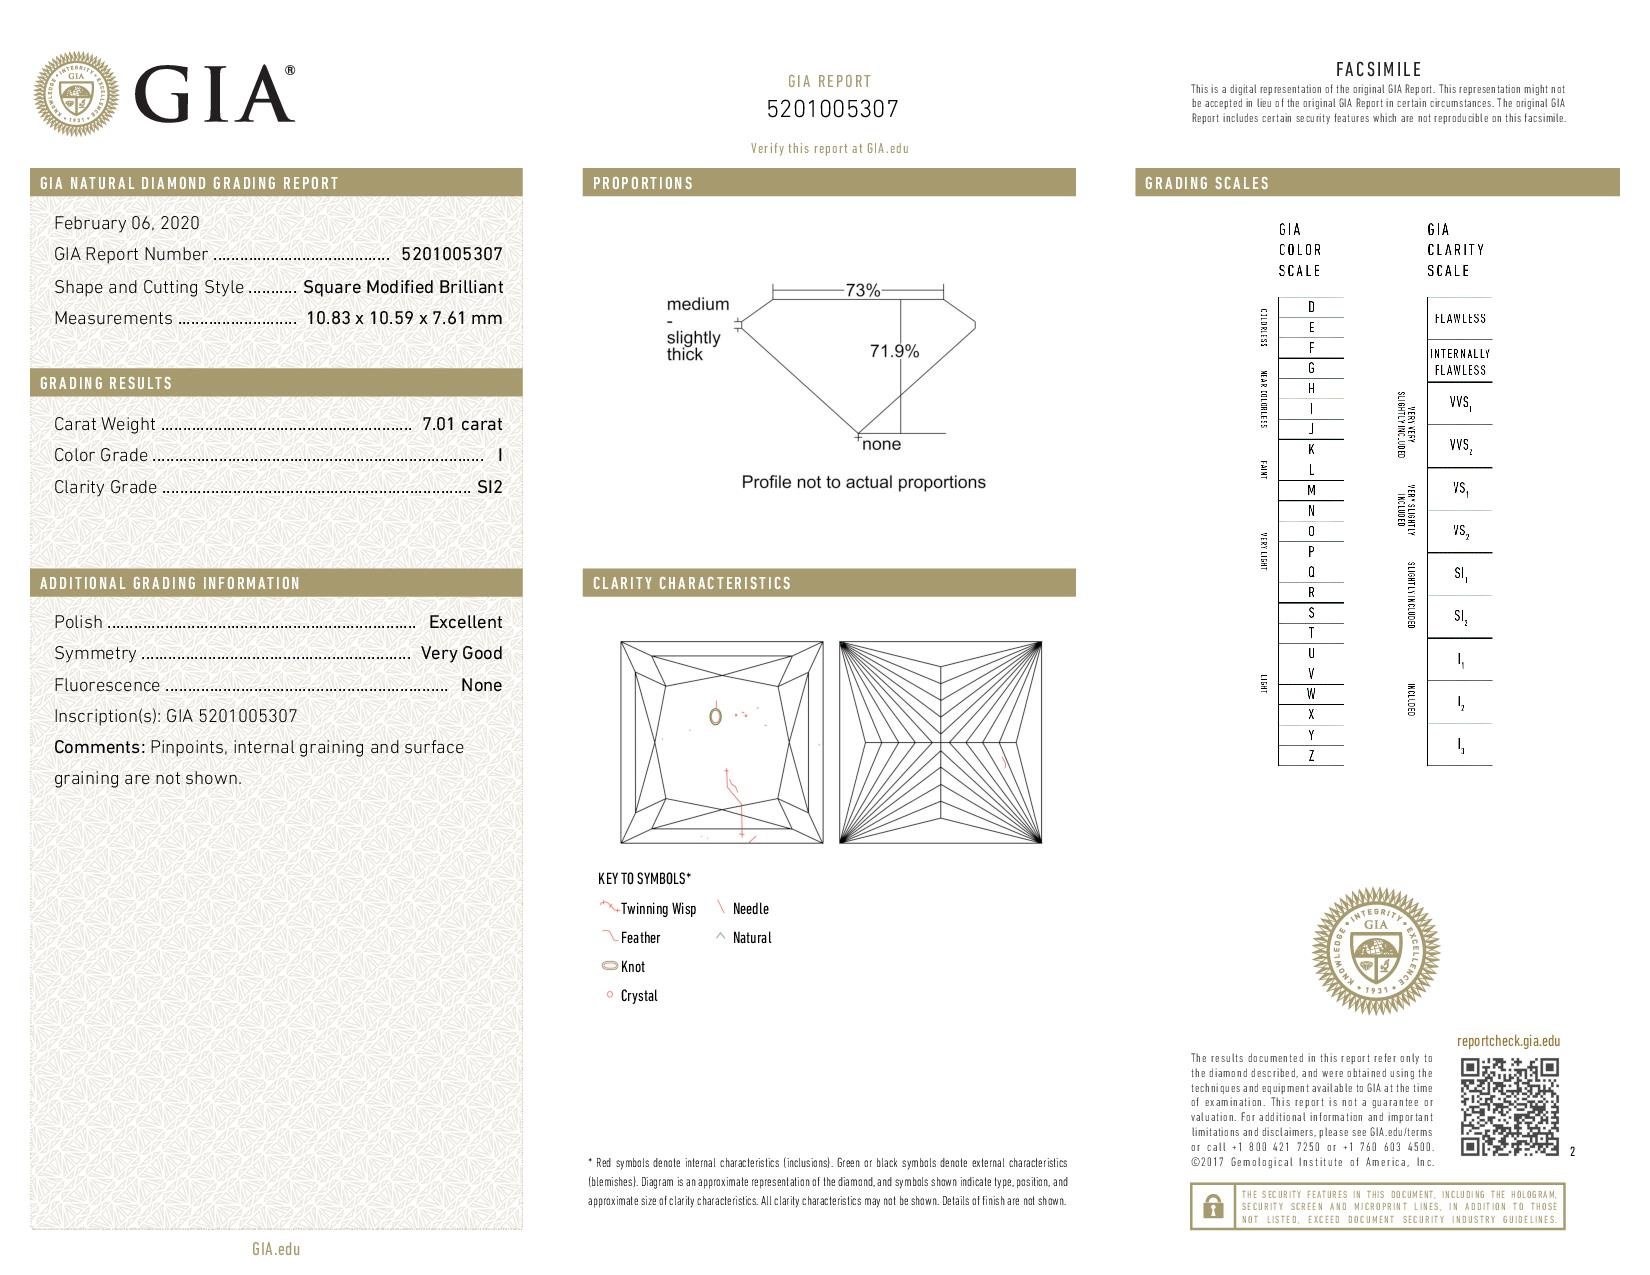 This is a 7.01 carat princess shape, I color, SI2 clarity natural diamond accompanied by a GIA grading report.